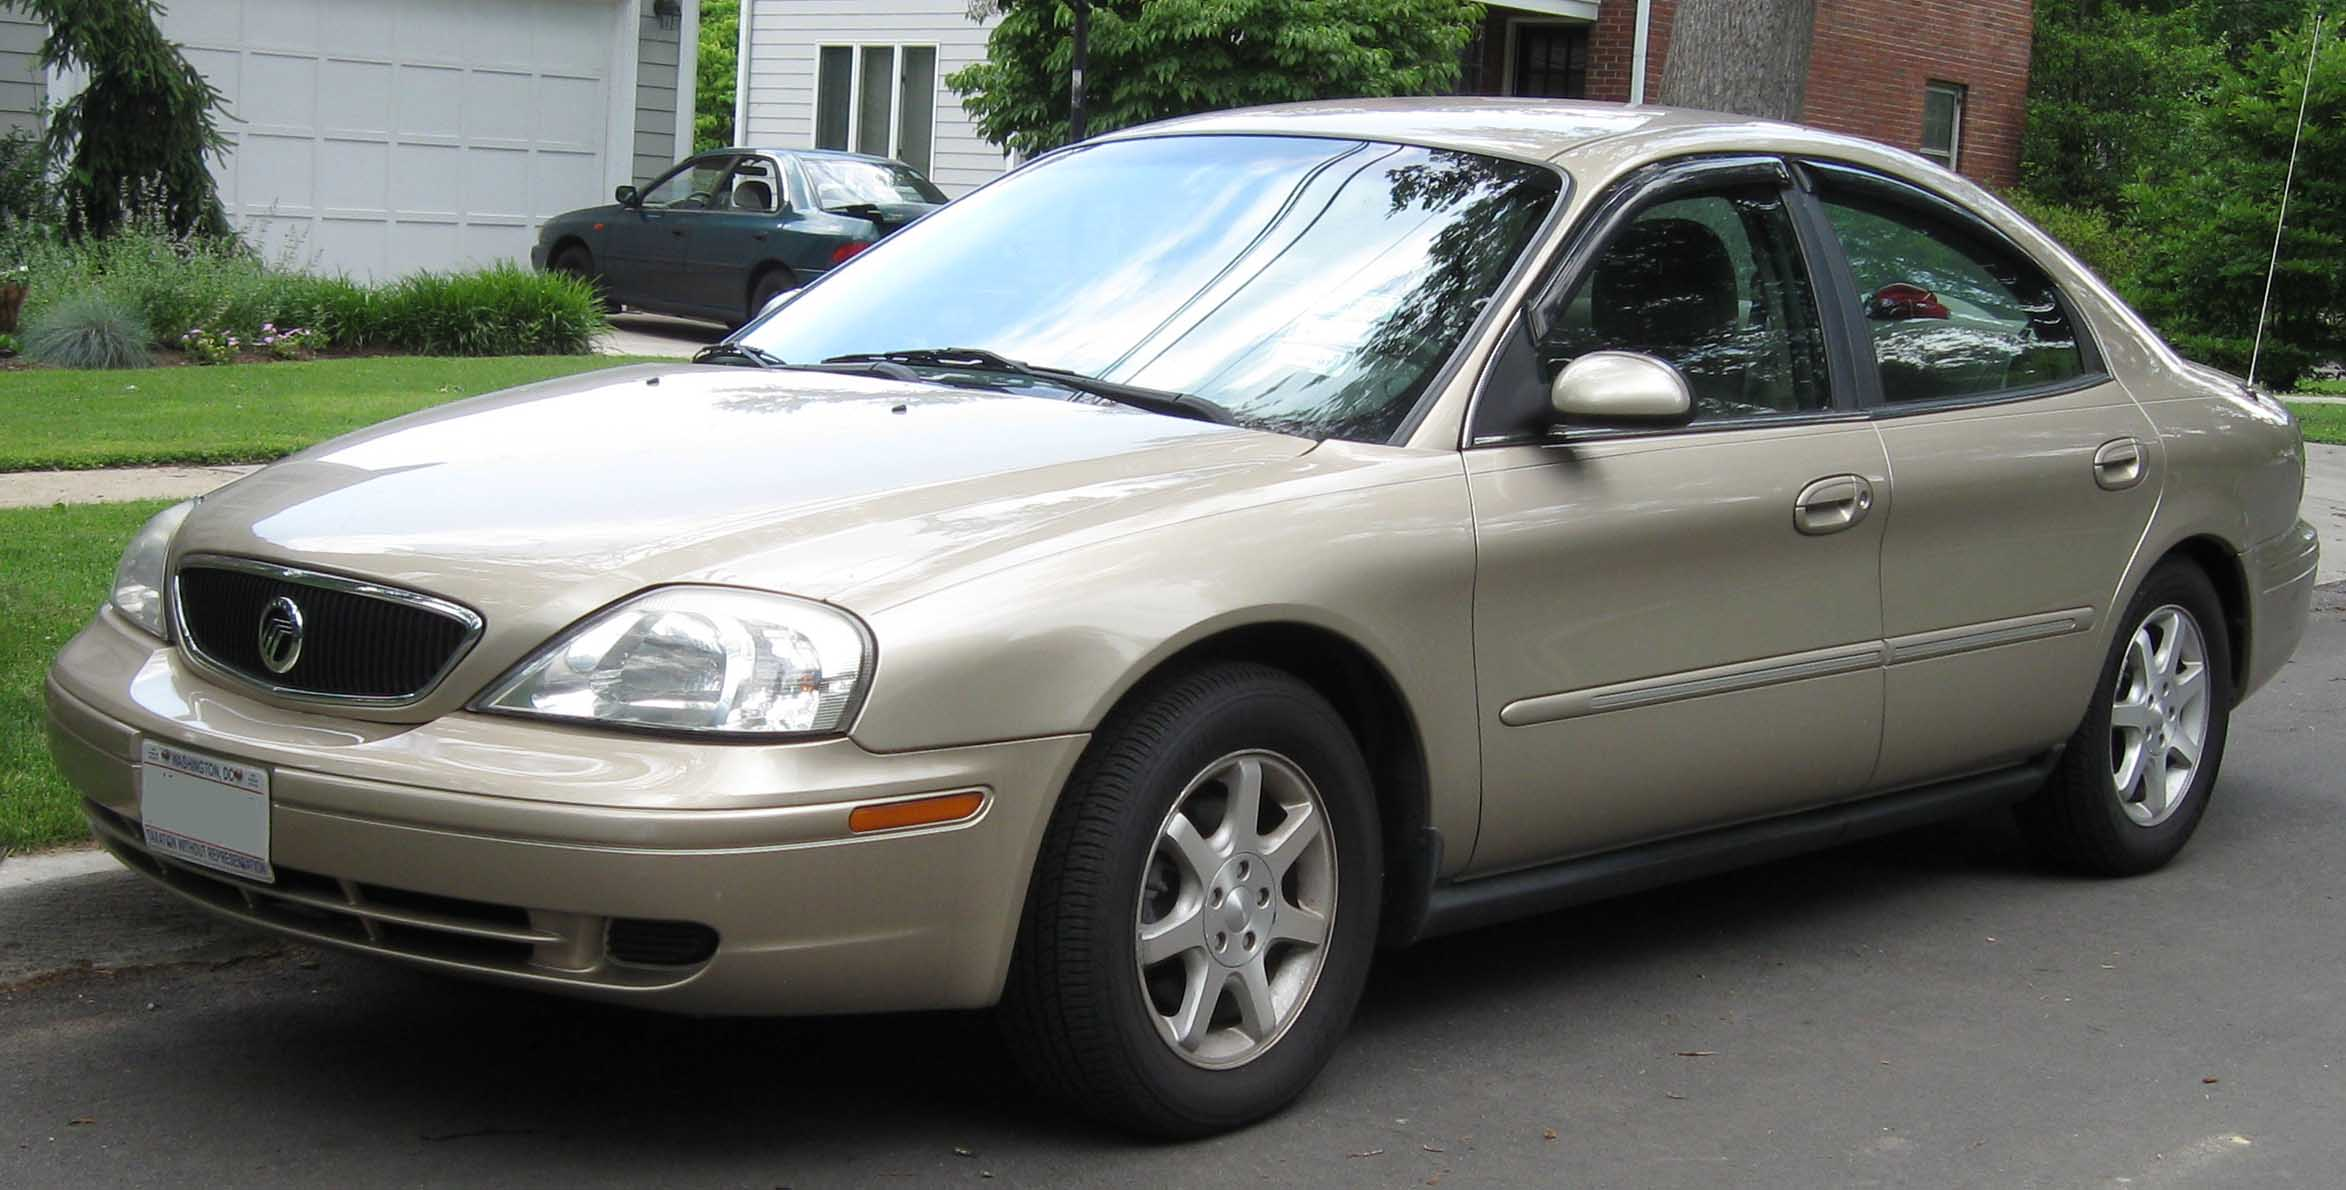 2000 Mercury Sable Information And Photos Zombiedrive 2001 Gmc Yukon Xl Engine Diagram 13